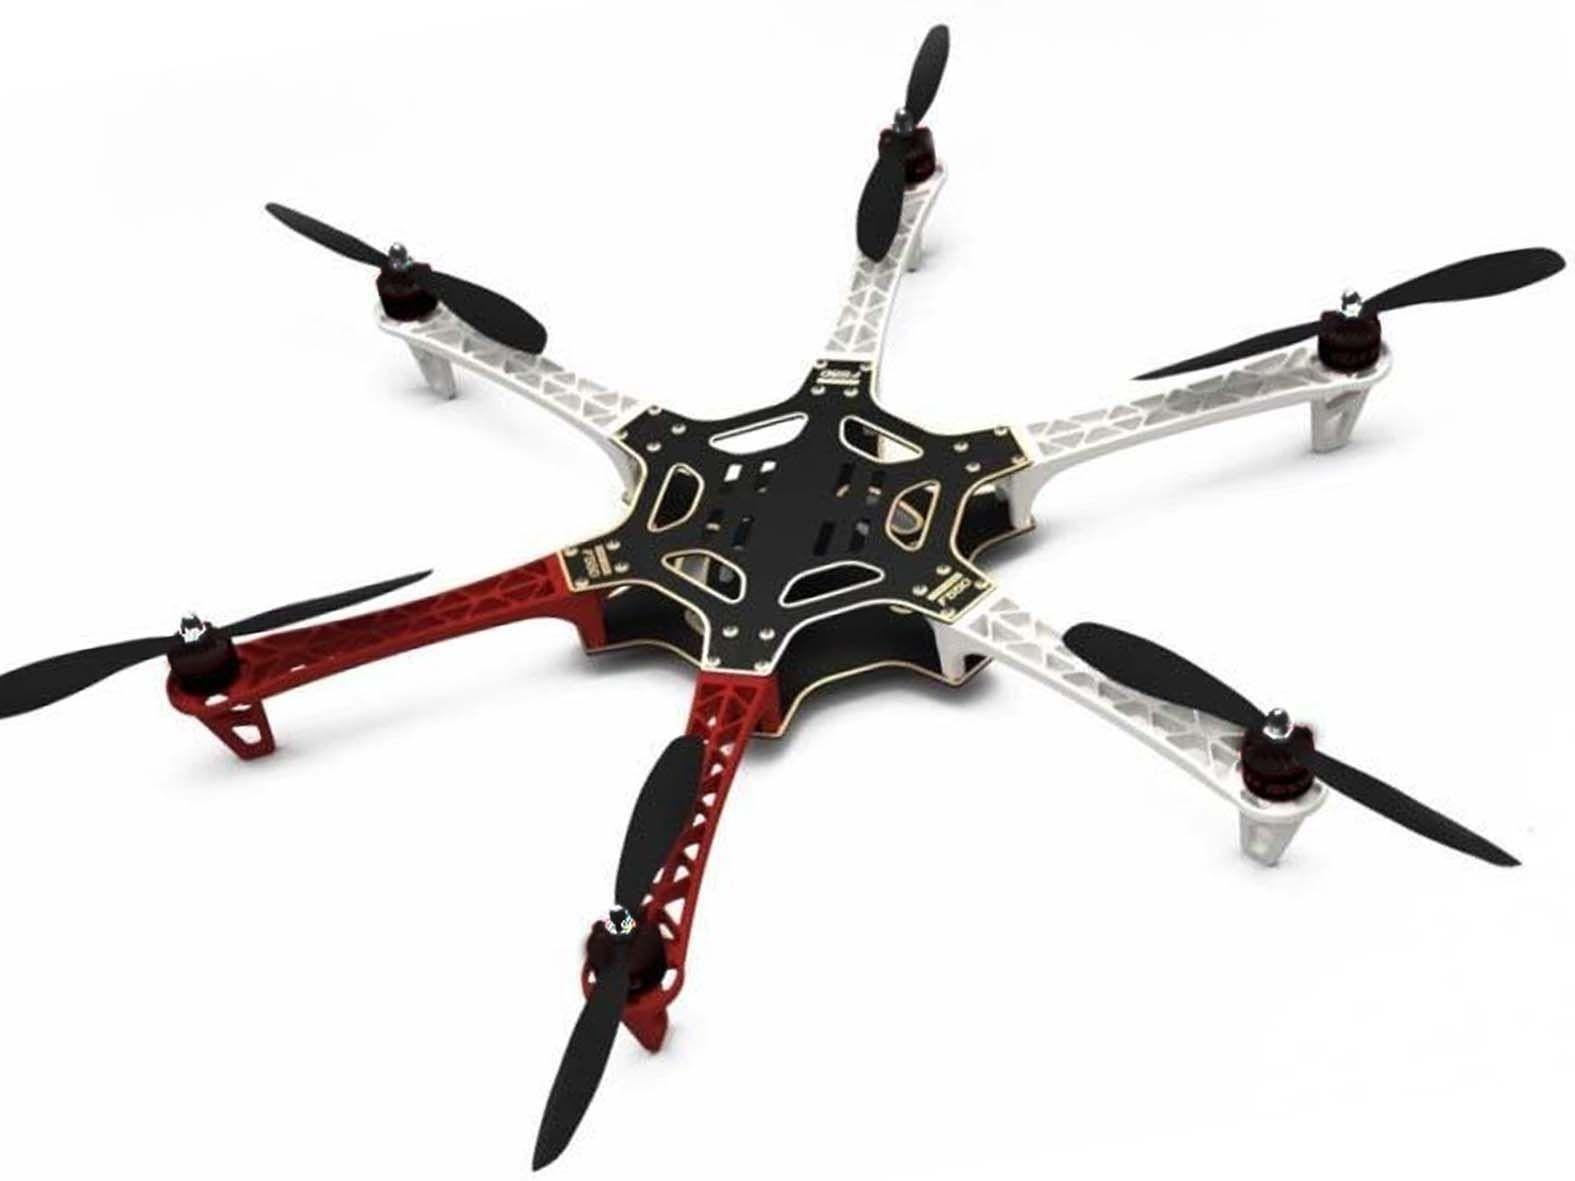 Discount Diy F550 Hexacopter Frame Kit X2212 980kv Brushless Motor ...